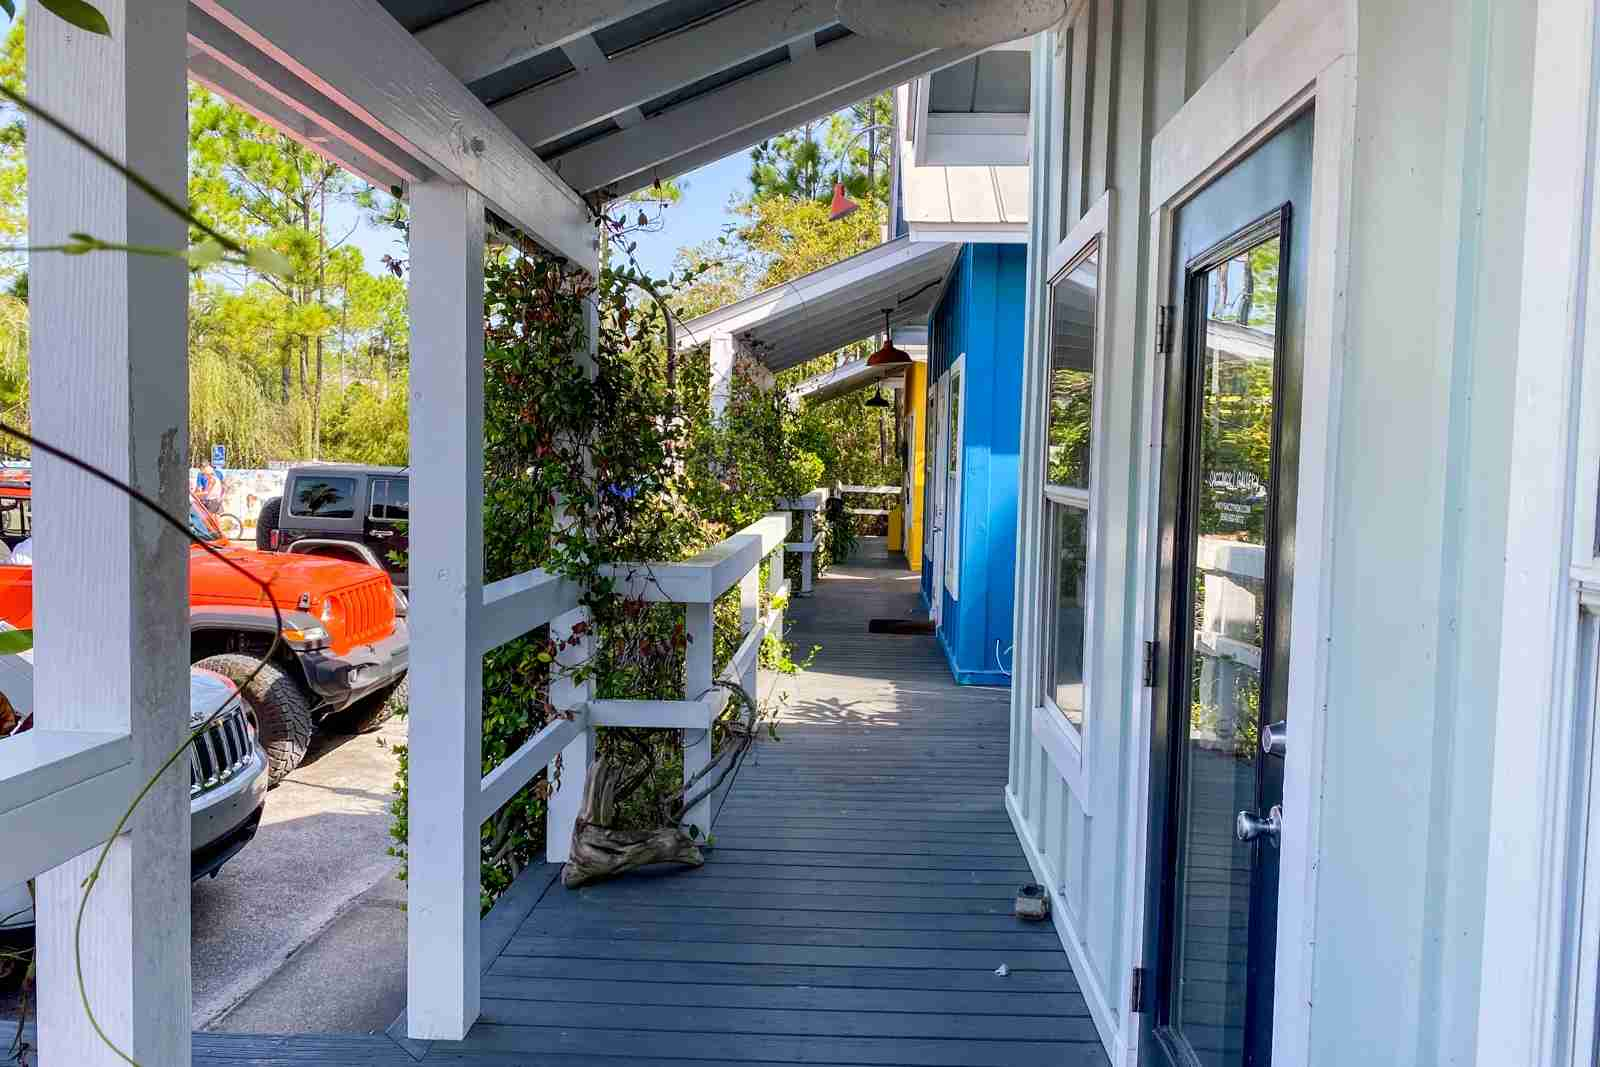 Shops in Grayton Beach (Photo by Summer Hull/The Points Guy)